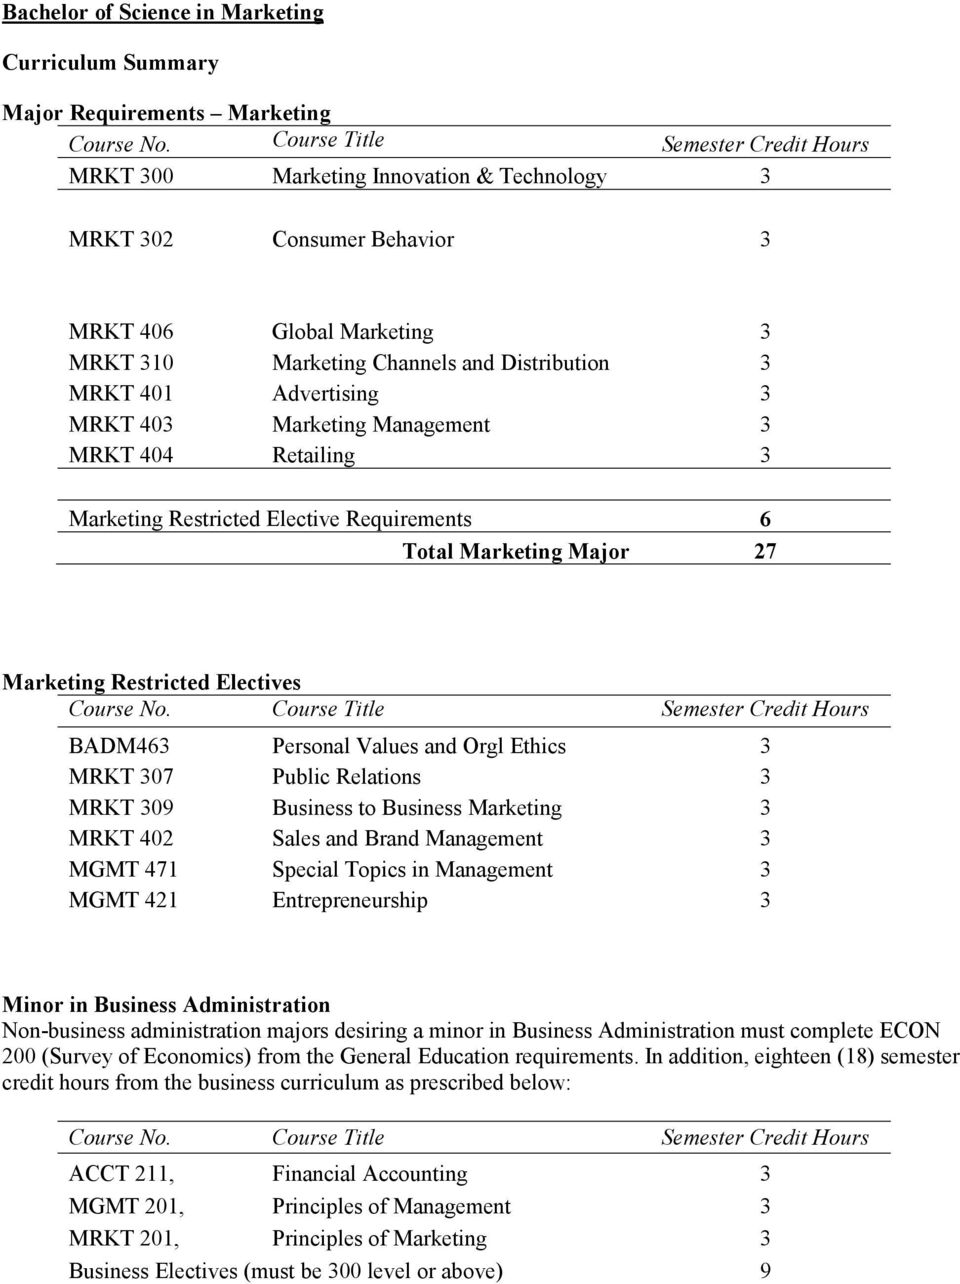 Electives BADM463 Personal Values and Orgl Ethics 3 MRKT 307 Public Relations 3 MRKT 309 Business to Business Marketing 3 MRKT 402 Sales and Brand Management 3 MGMT 471 Special Topics in Management 3